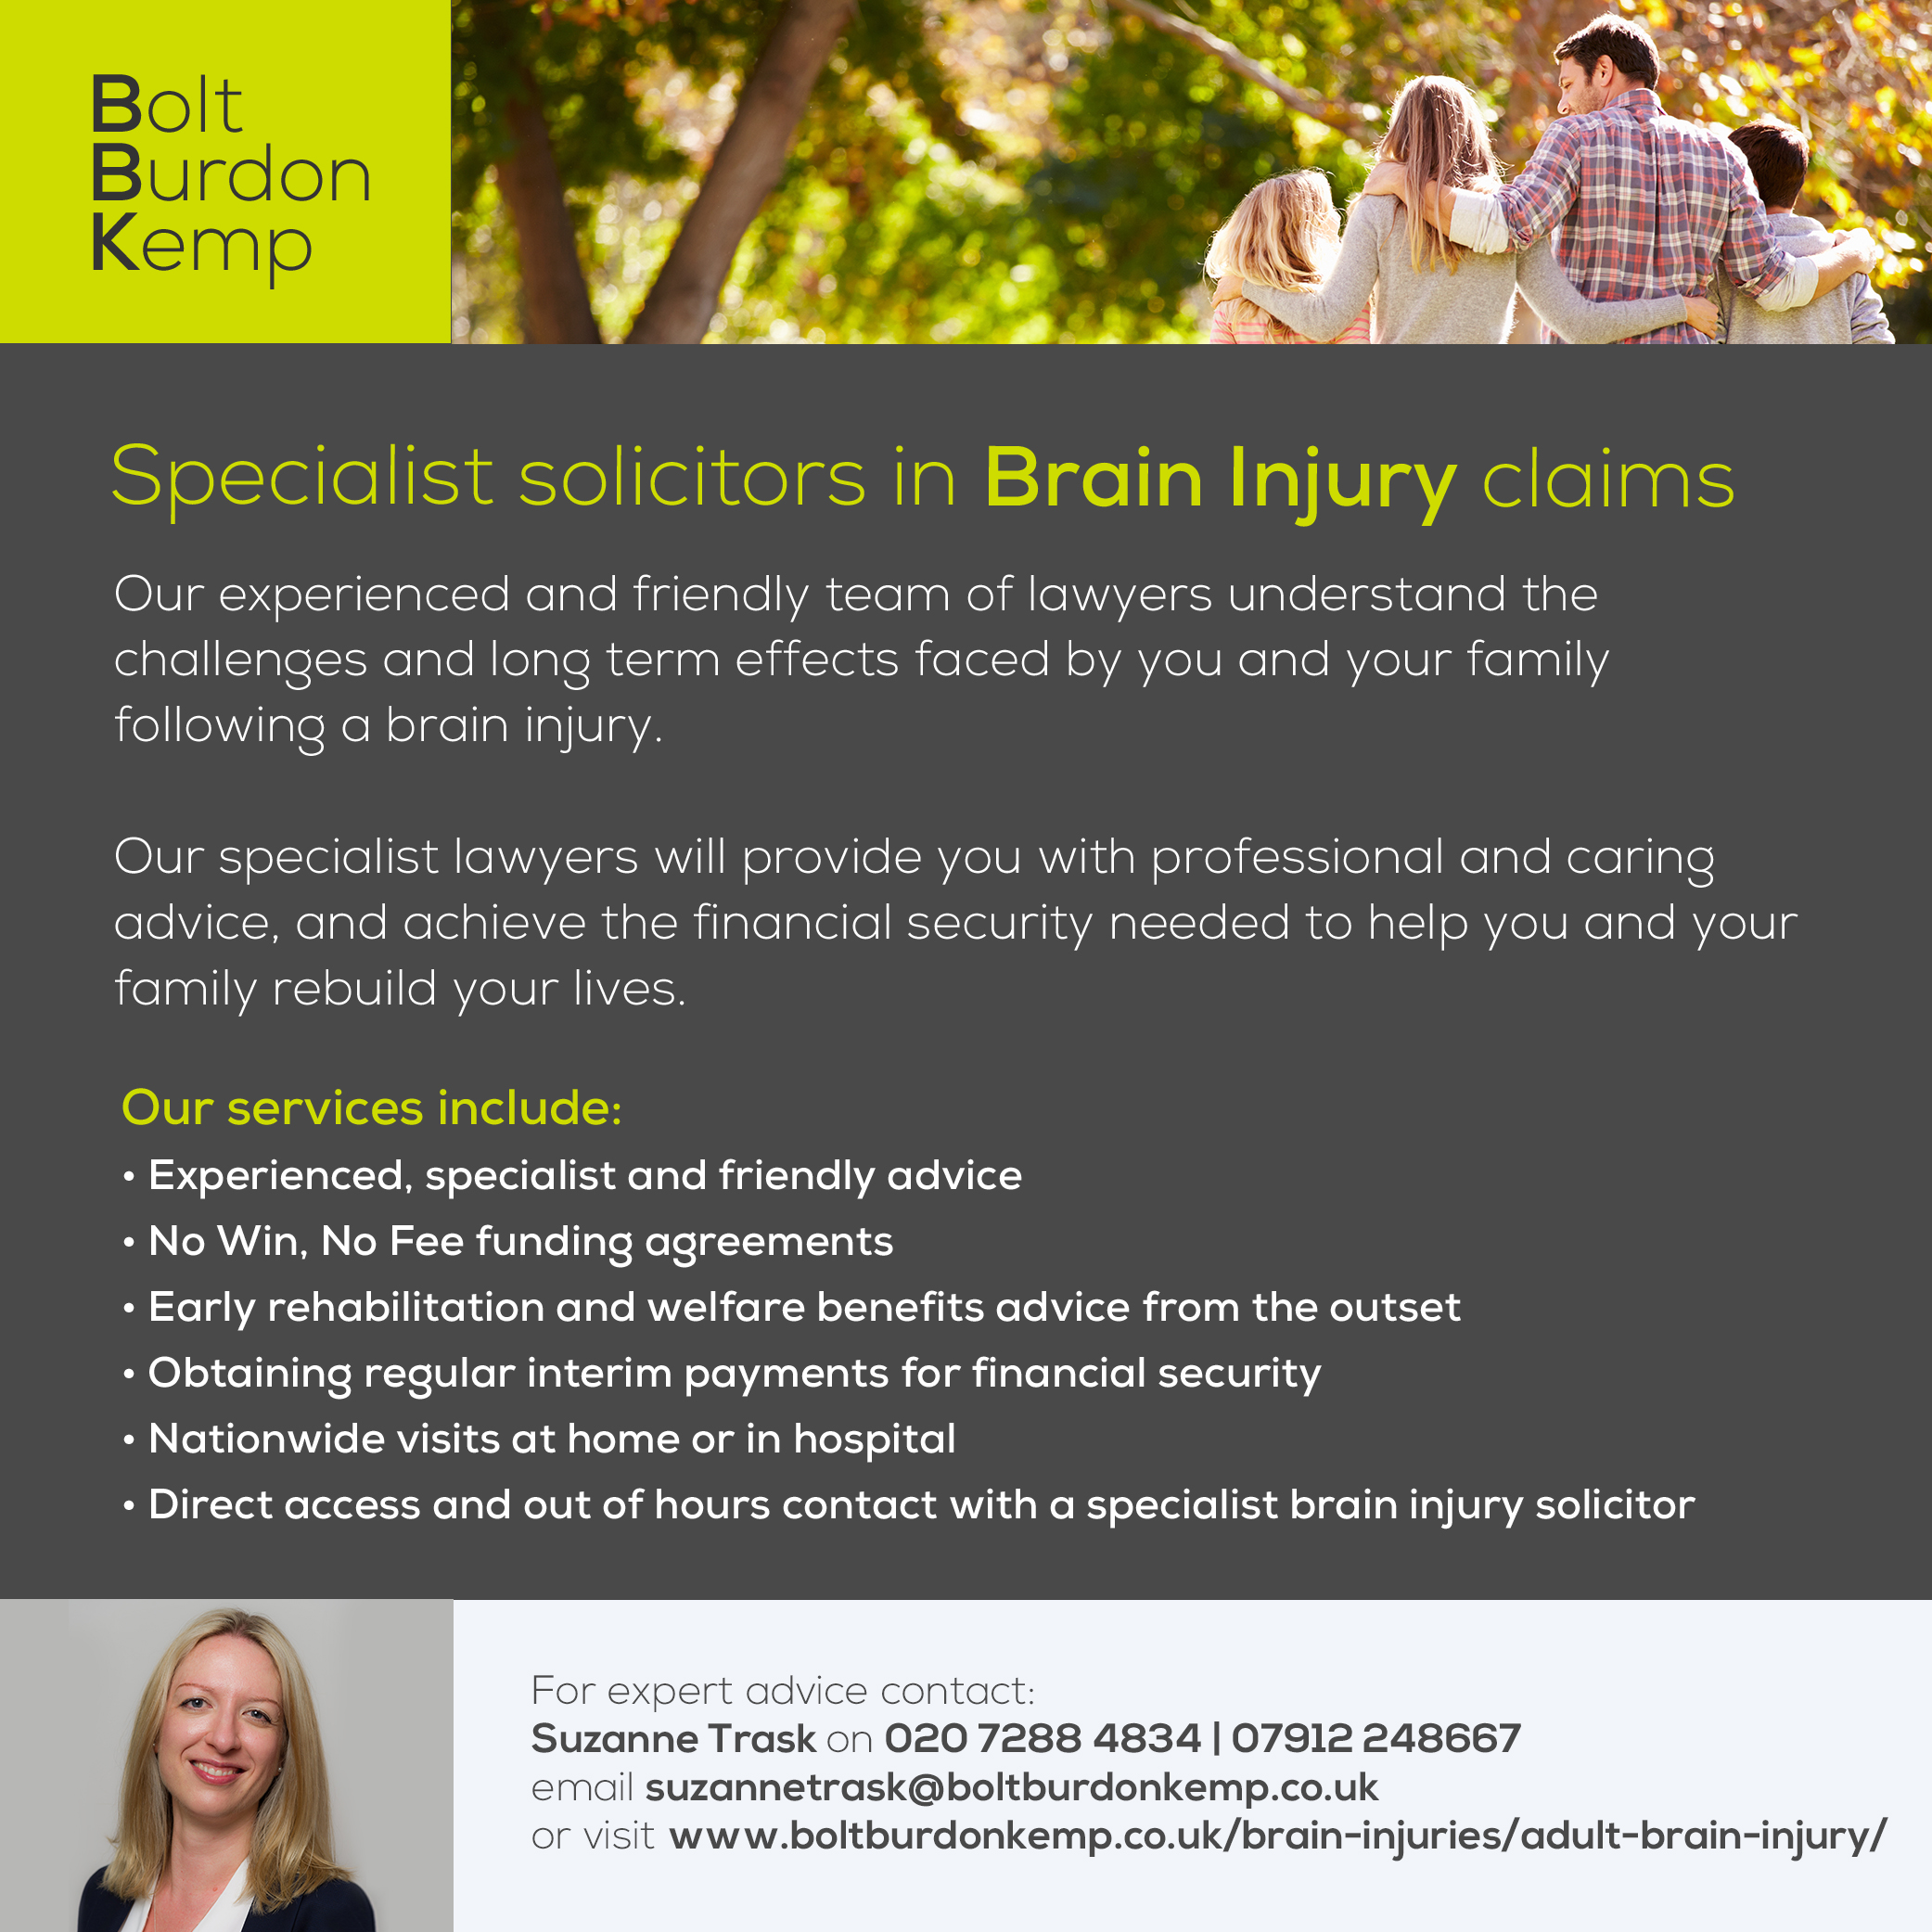 Bolt Burdon Kemp Advert